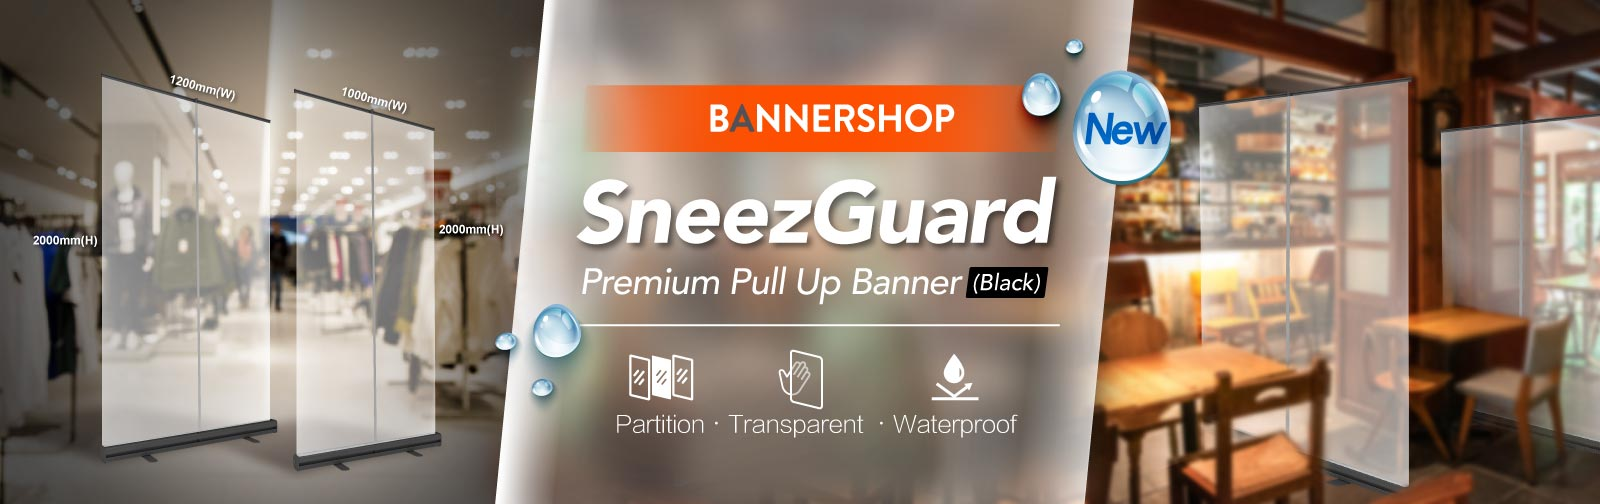 SneezGuard Pull Up Banner, Pull Up Banner Design, Pull Up Banner Size, Pull Up Banner Printing, Roll Up Banner